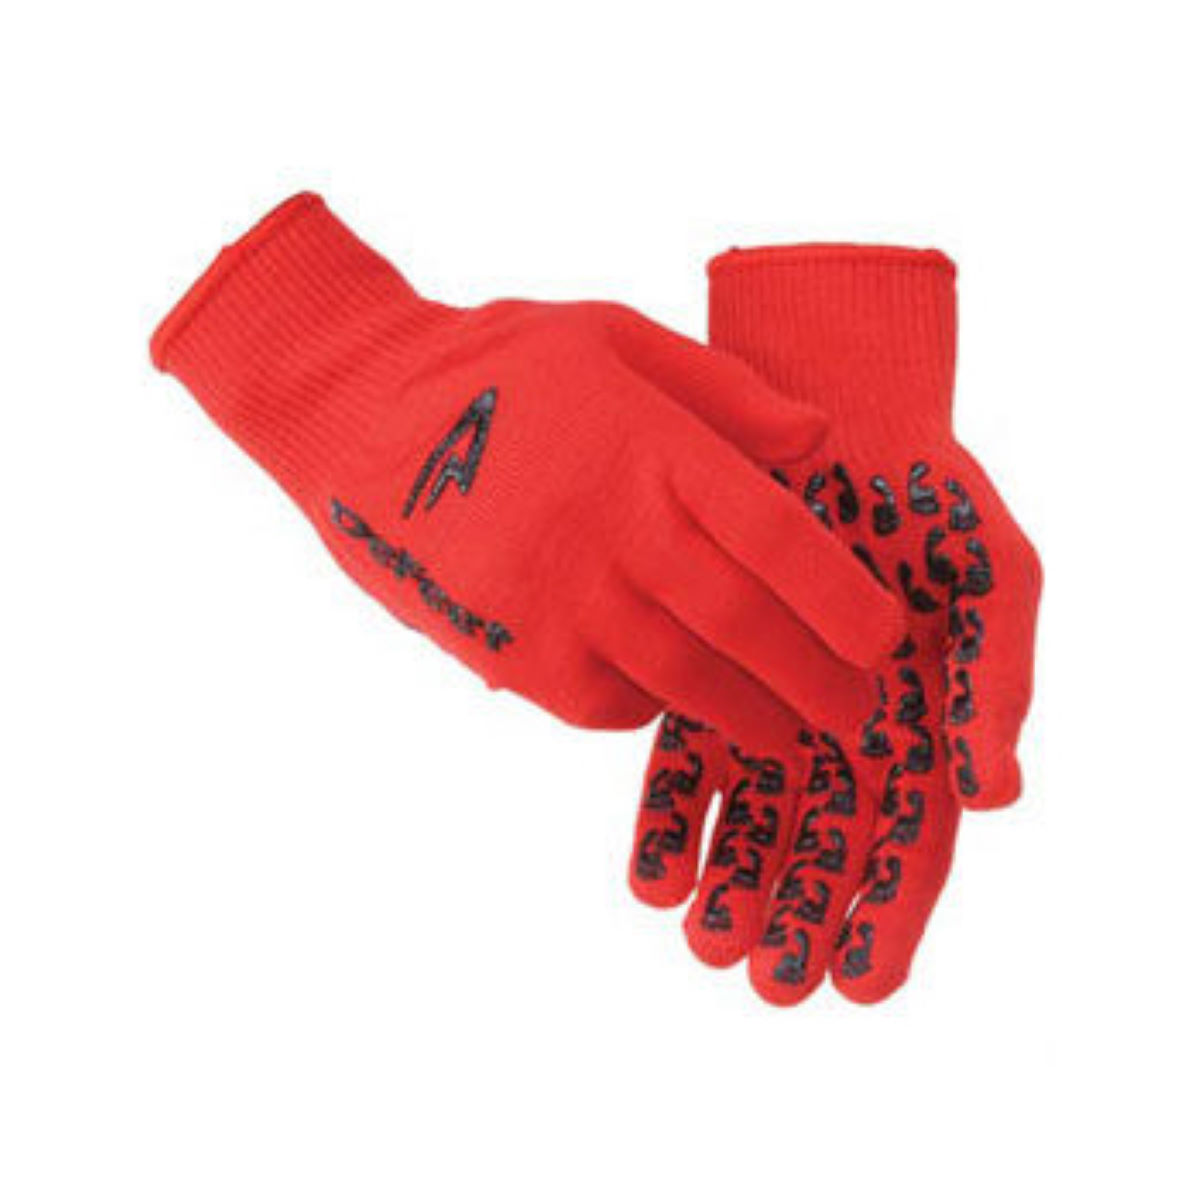 DeFeet Dura Cycling Gloves